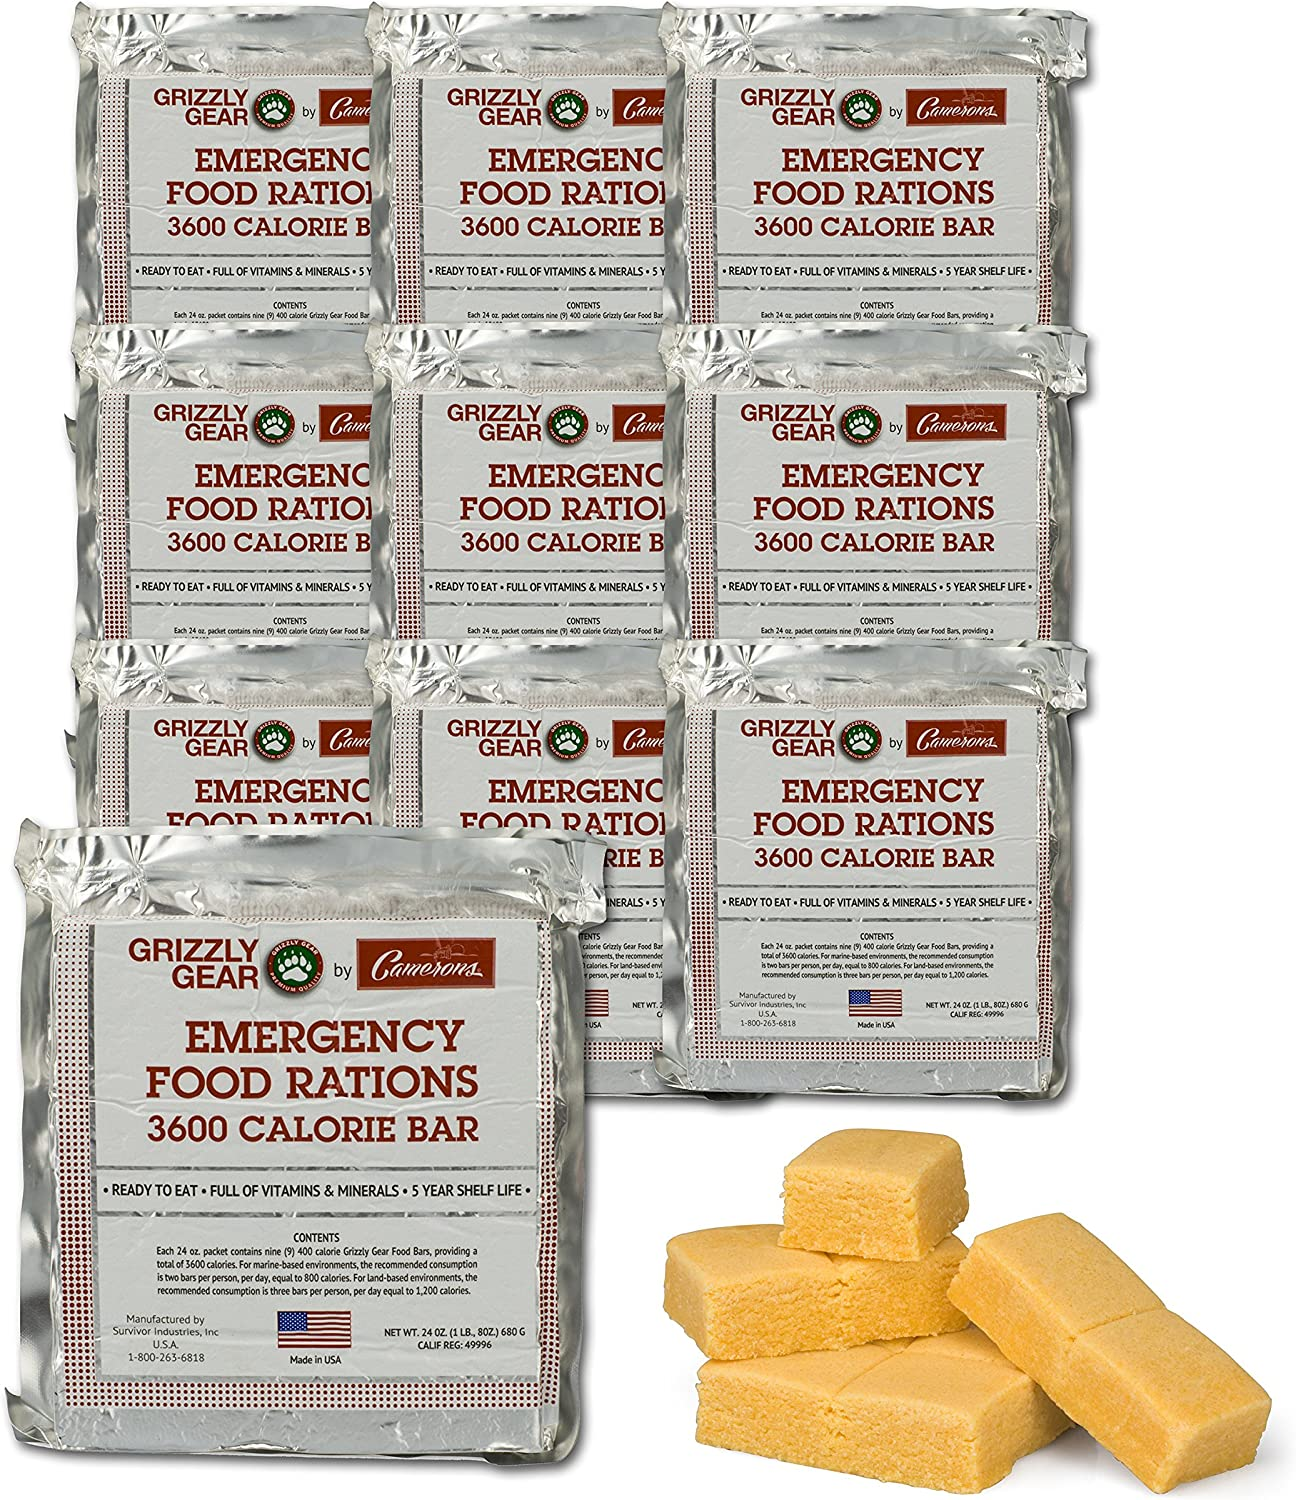 Emergency Food Rations Case of 10-3600 Calorie Bars - 30 Day Supply- Less Sugar and More Nutrients Than Other Leading Brands- (5 Year Shelf Life)